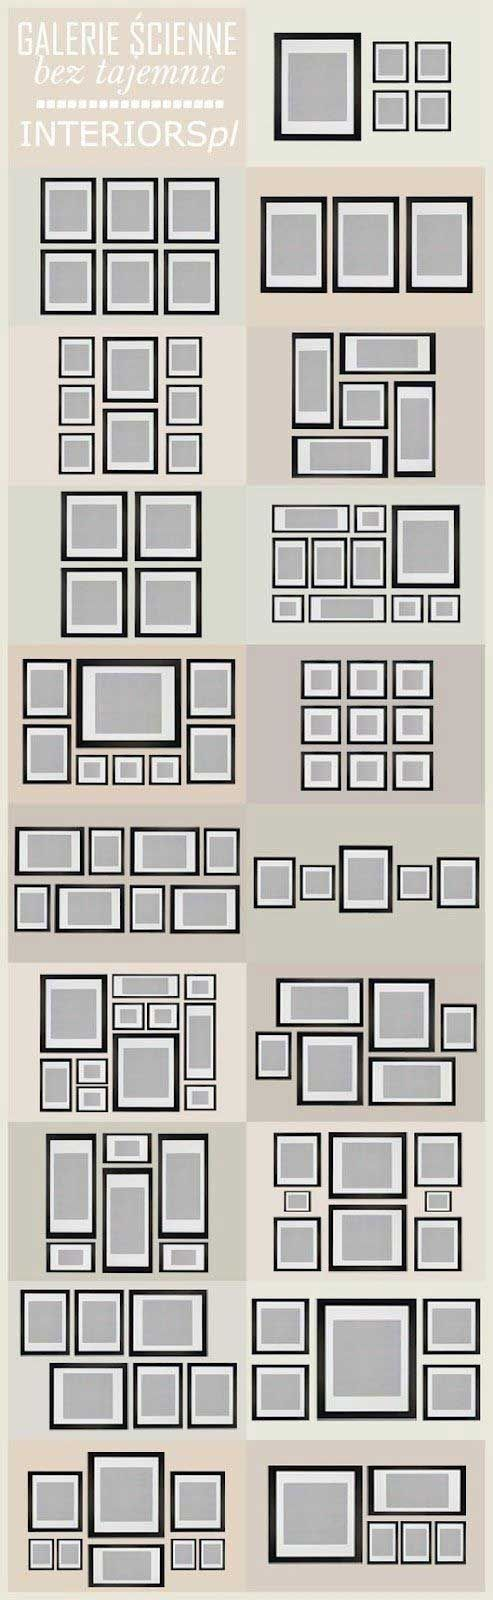 10 Tips For Creating A Collected Gallery Wall Gallery Wall Template Gallery Wall Inspiration Gallery Wall Layout Create a gallery wall template